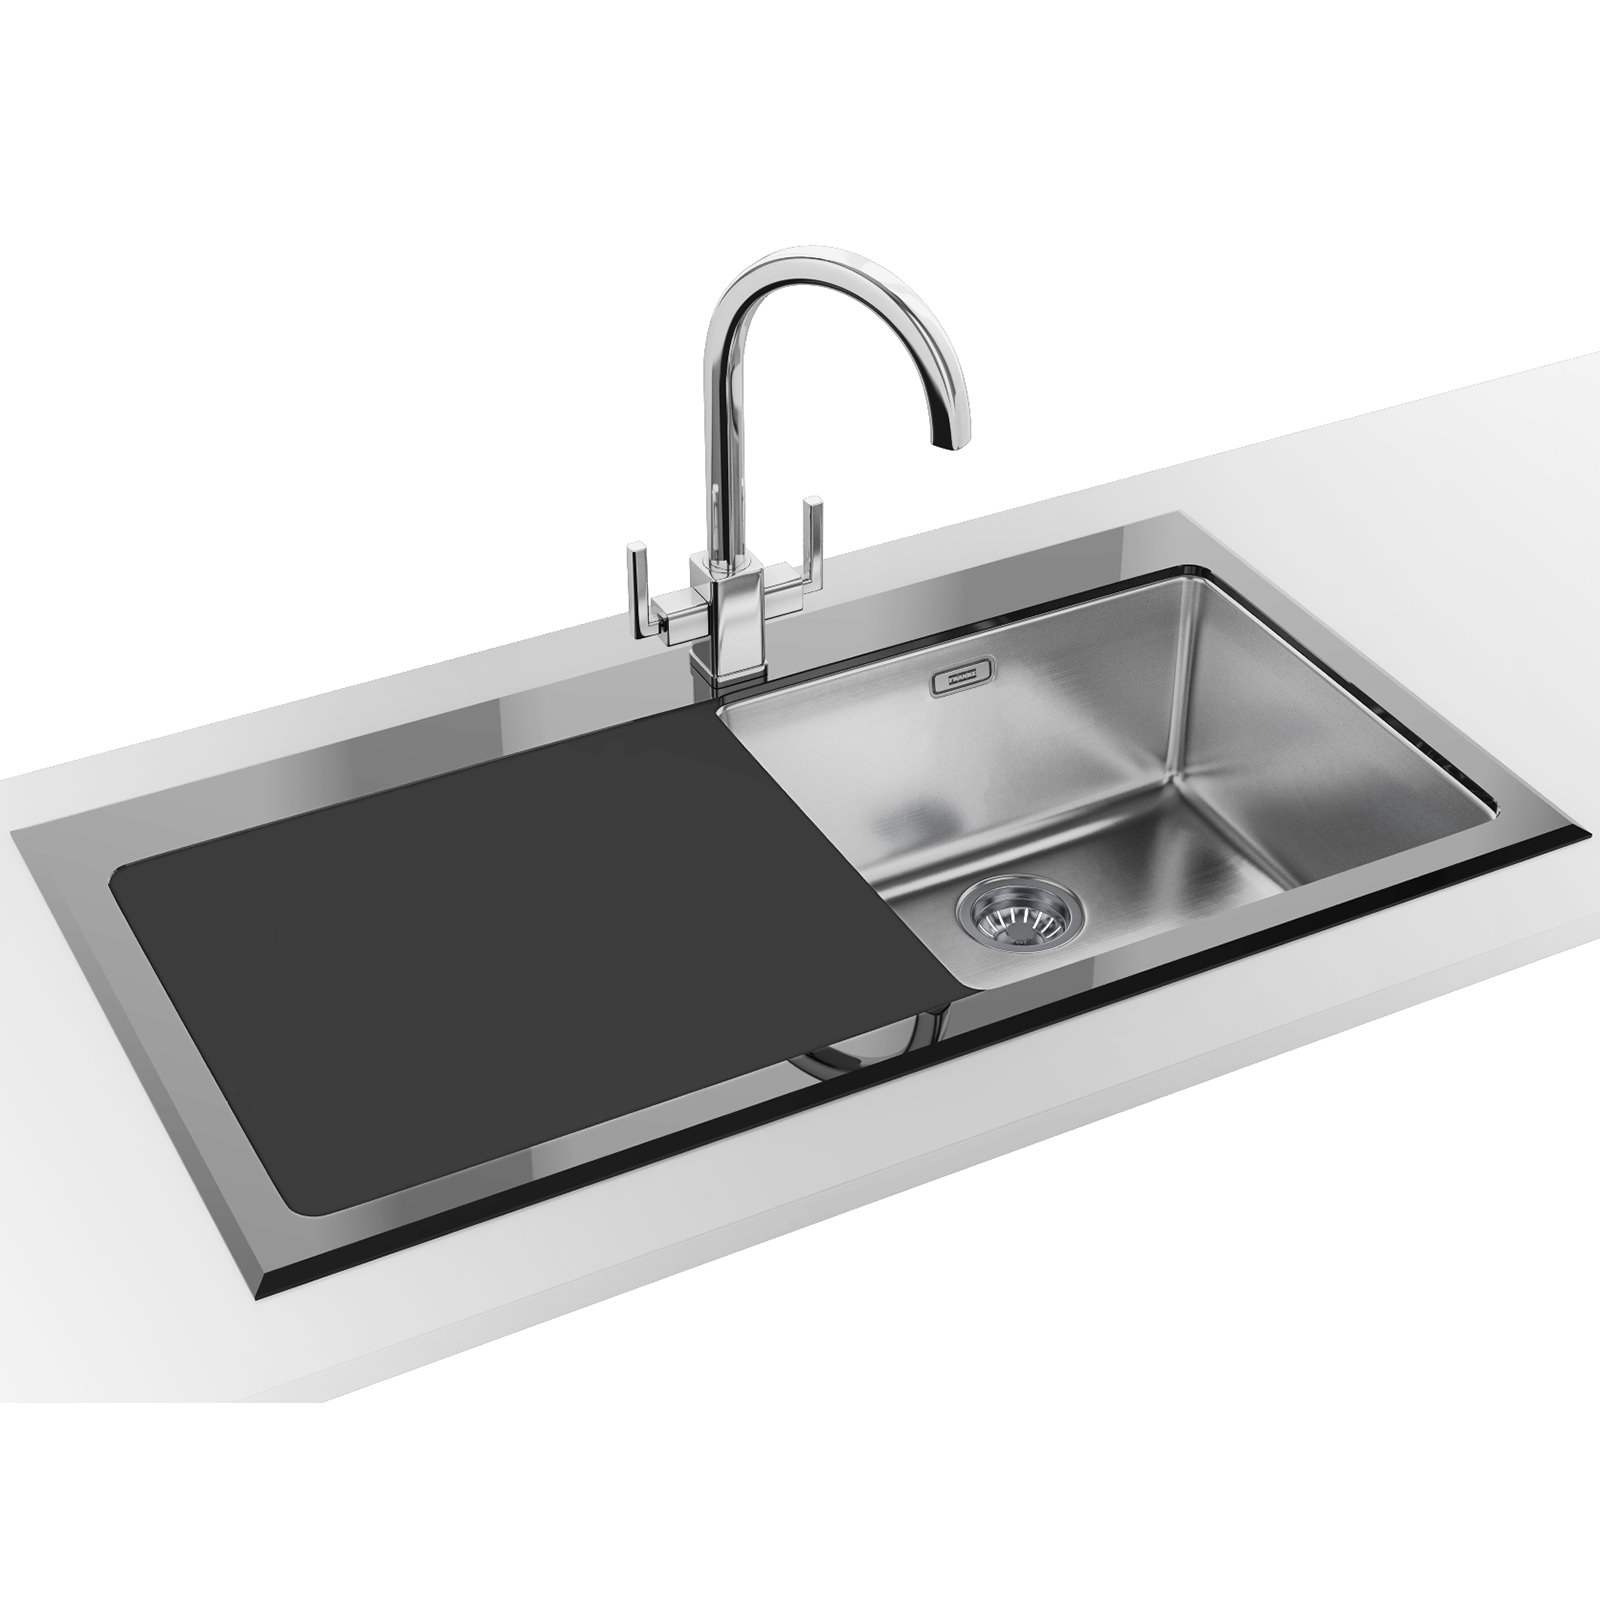 Fresh White Kitchen Sinks Uk - Taste